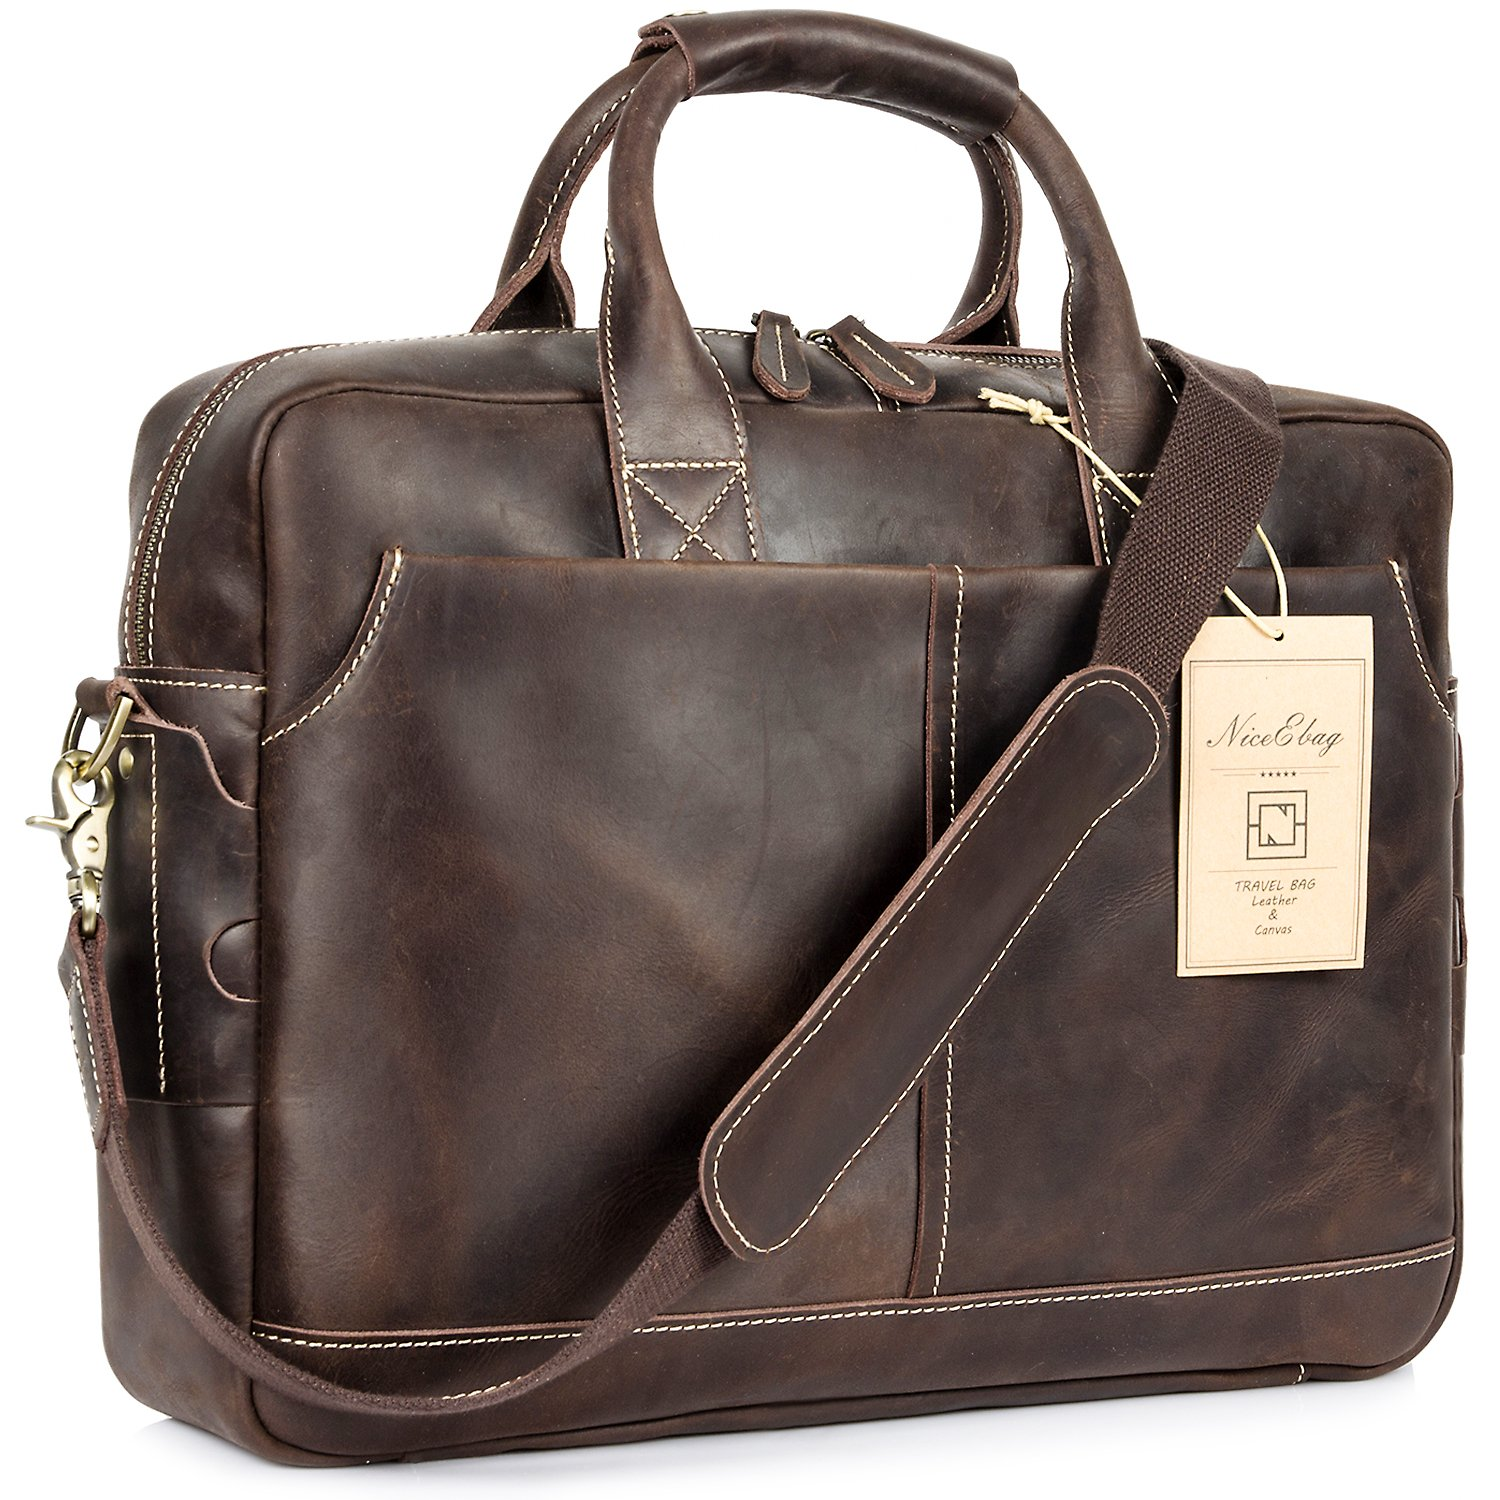 NiceEbag 15.6 Inches Laptop Briefcase Genuine Leather Messenger Bag Vintage Laptop Shoulder Bag Men Satchel Bag by NiceEbag